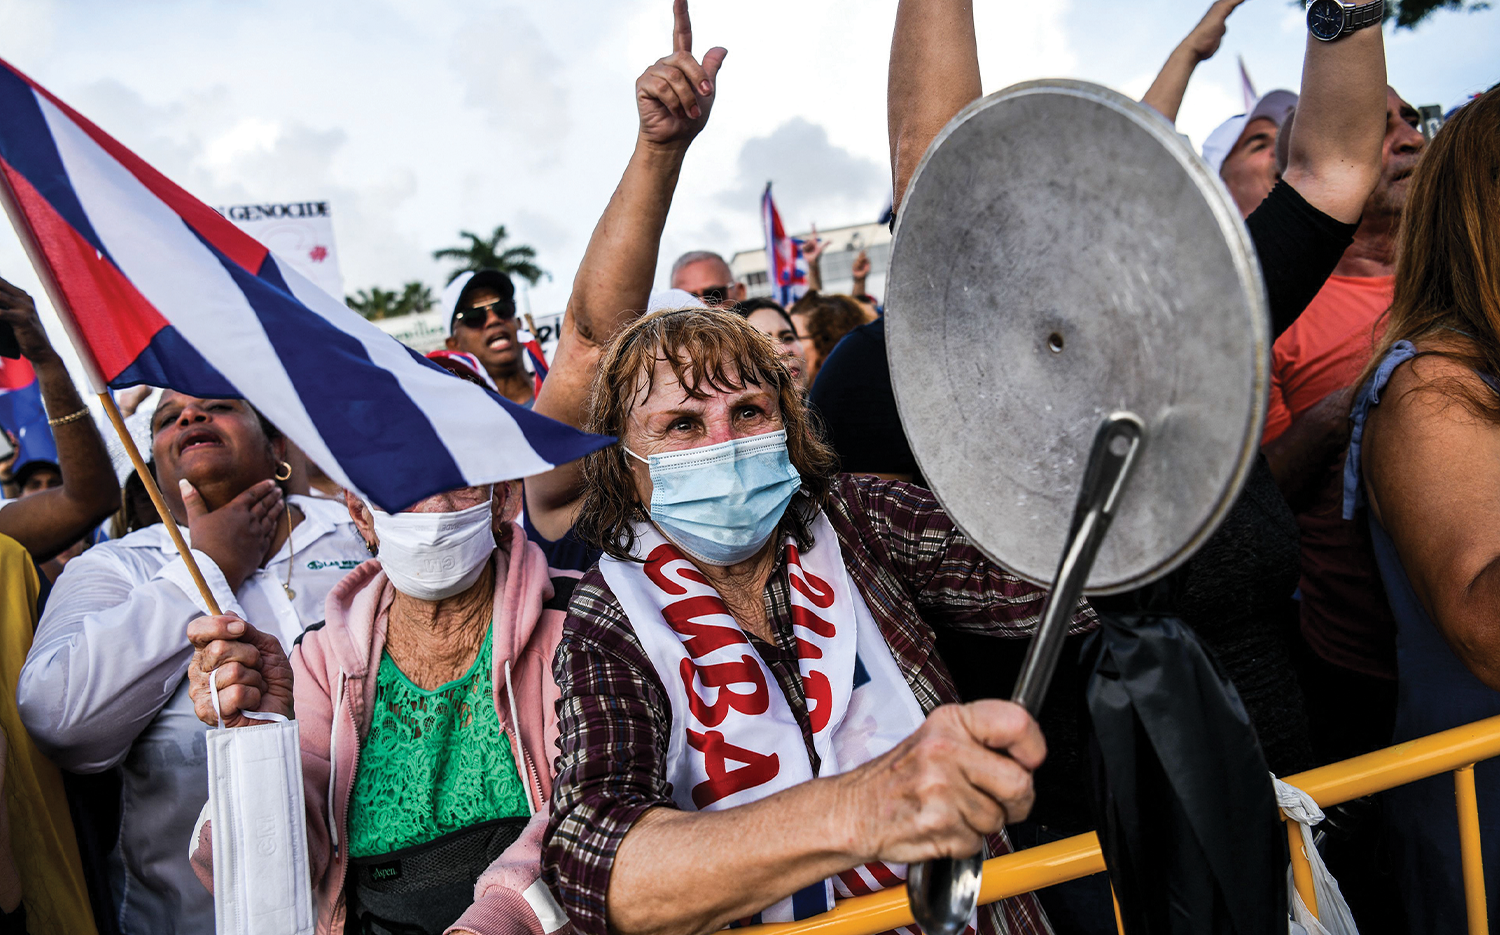 Protesters in Miami show support for Cubans demonstrating in Havana.